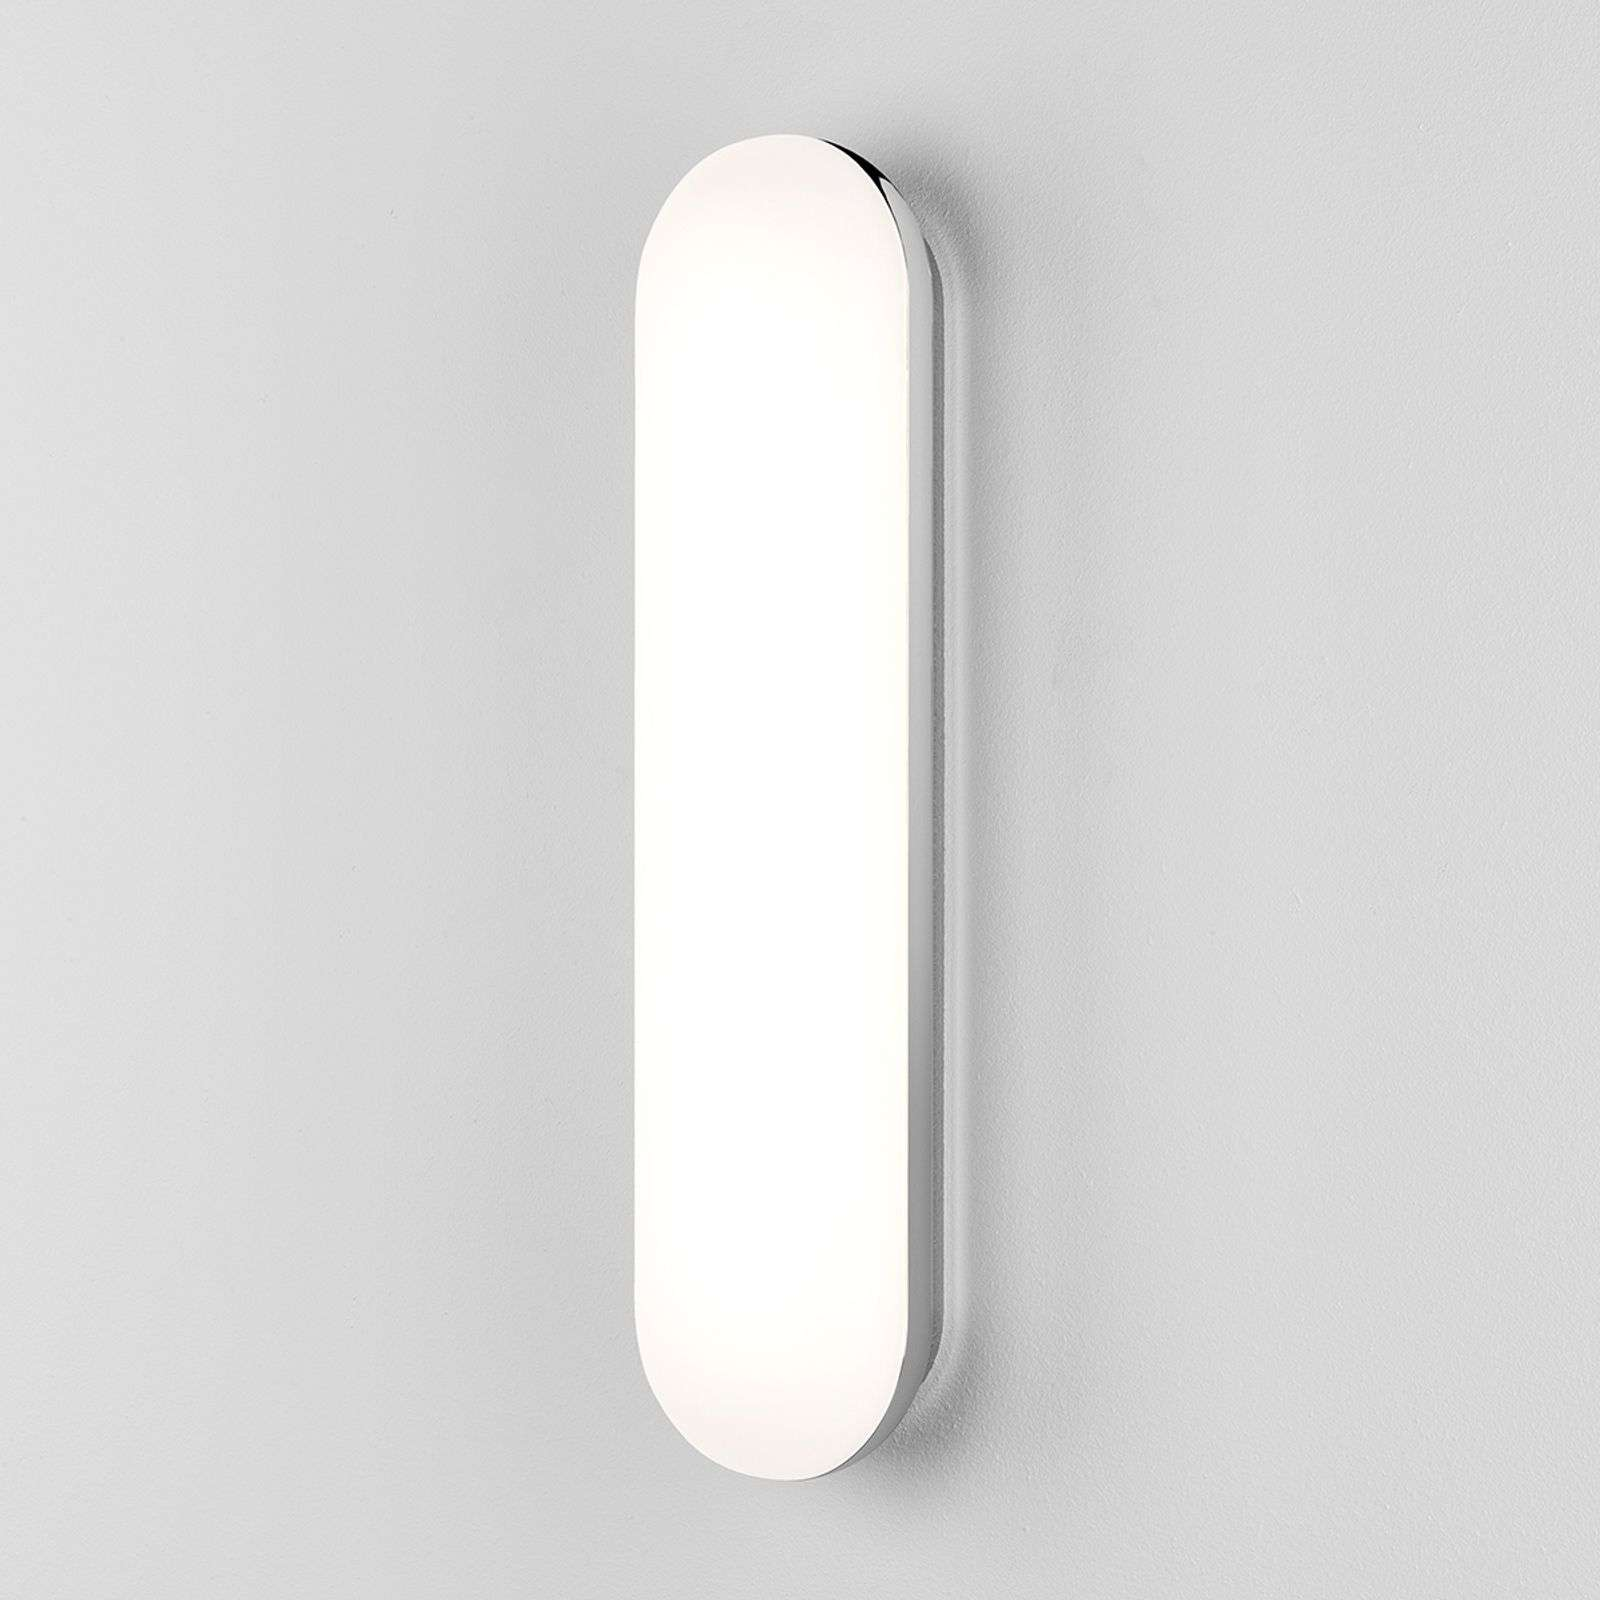 Applique LED Altea salle de bain, chromé brillant